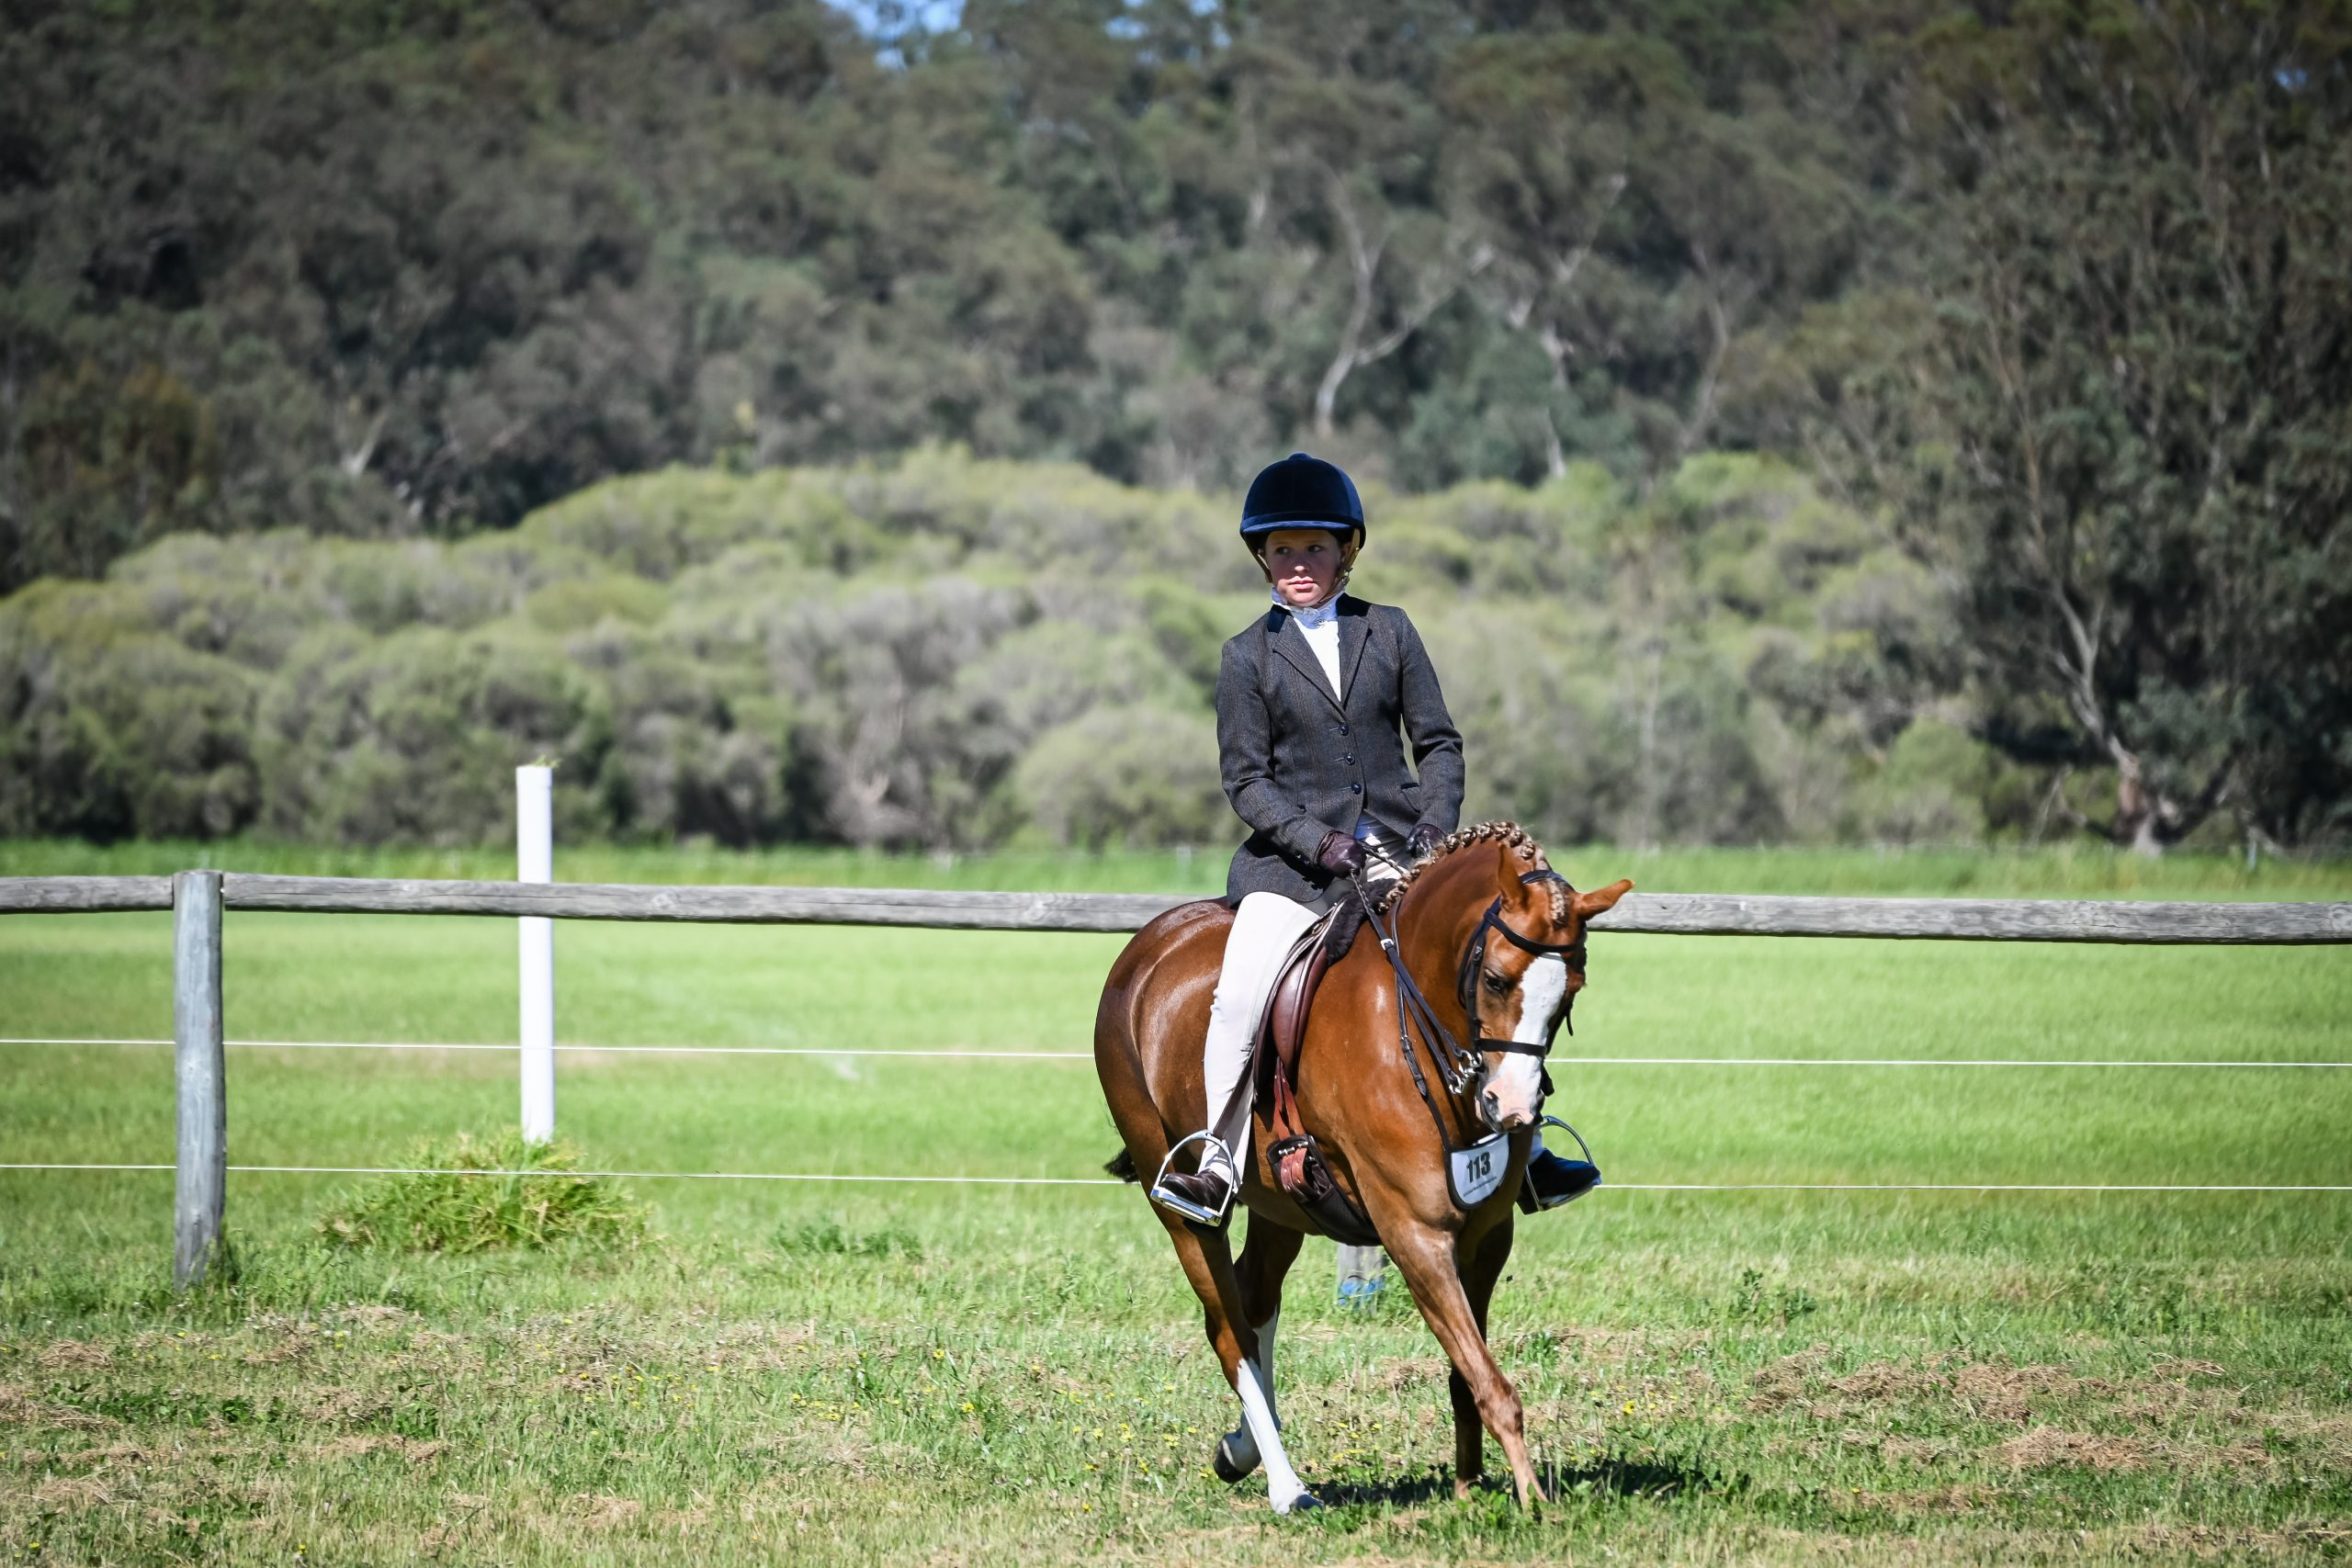 Exquisite Show Pony that can do it all. A true stand out pony to own!